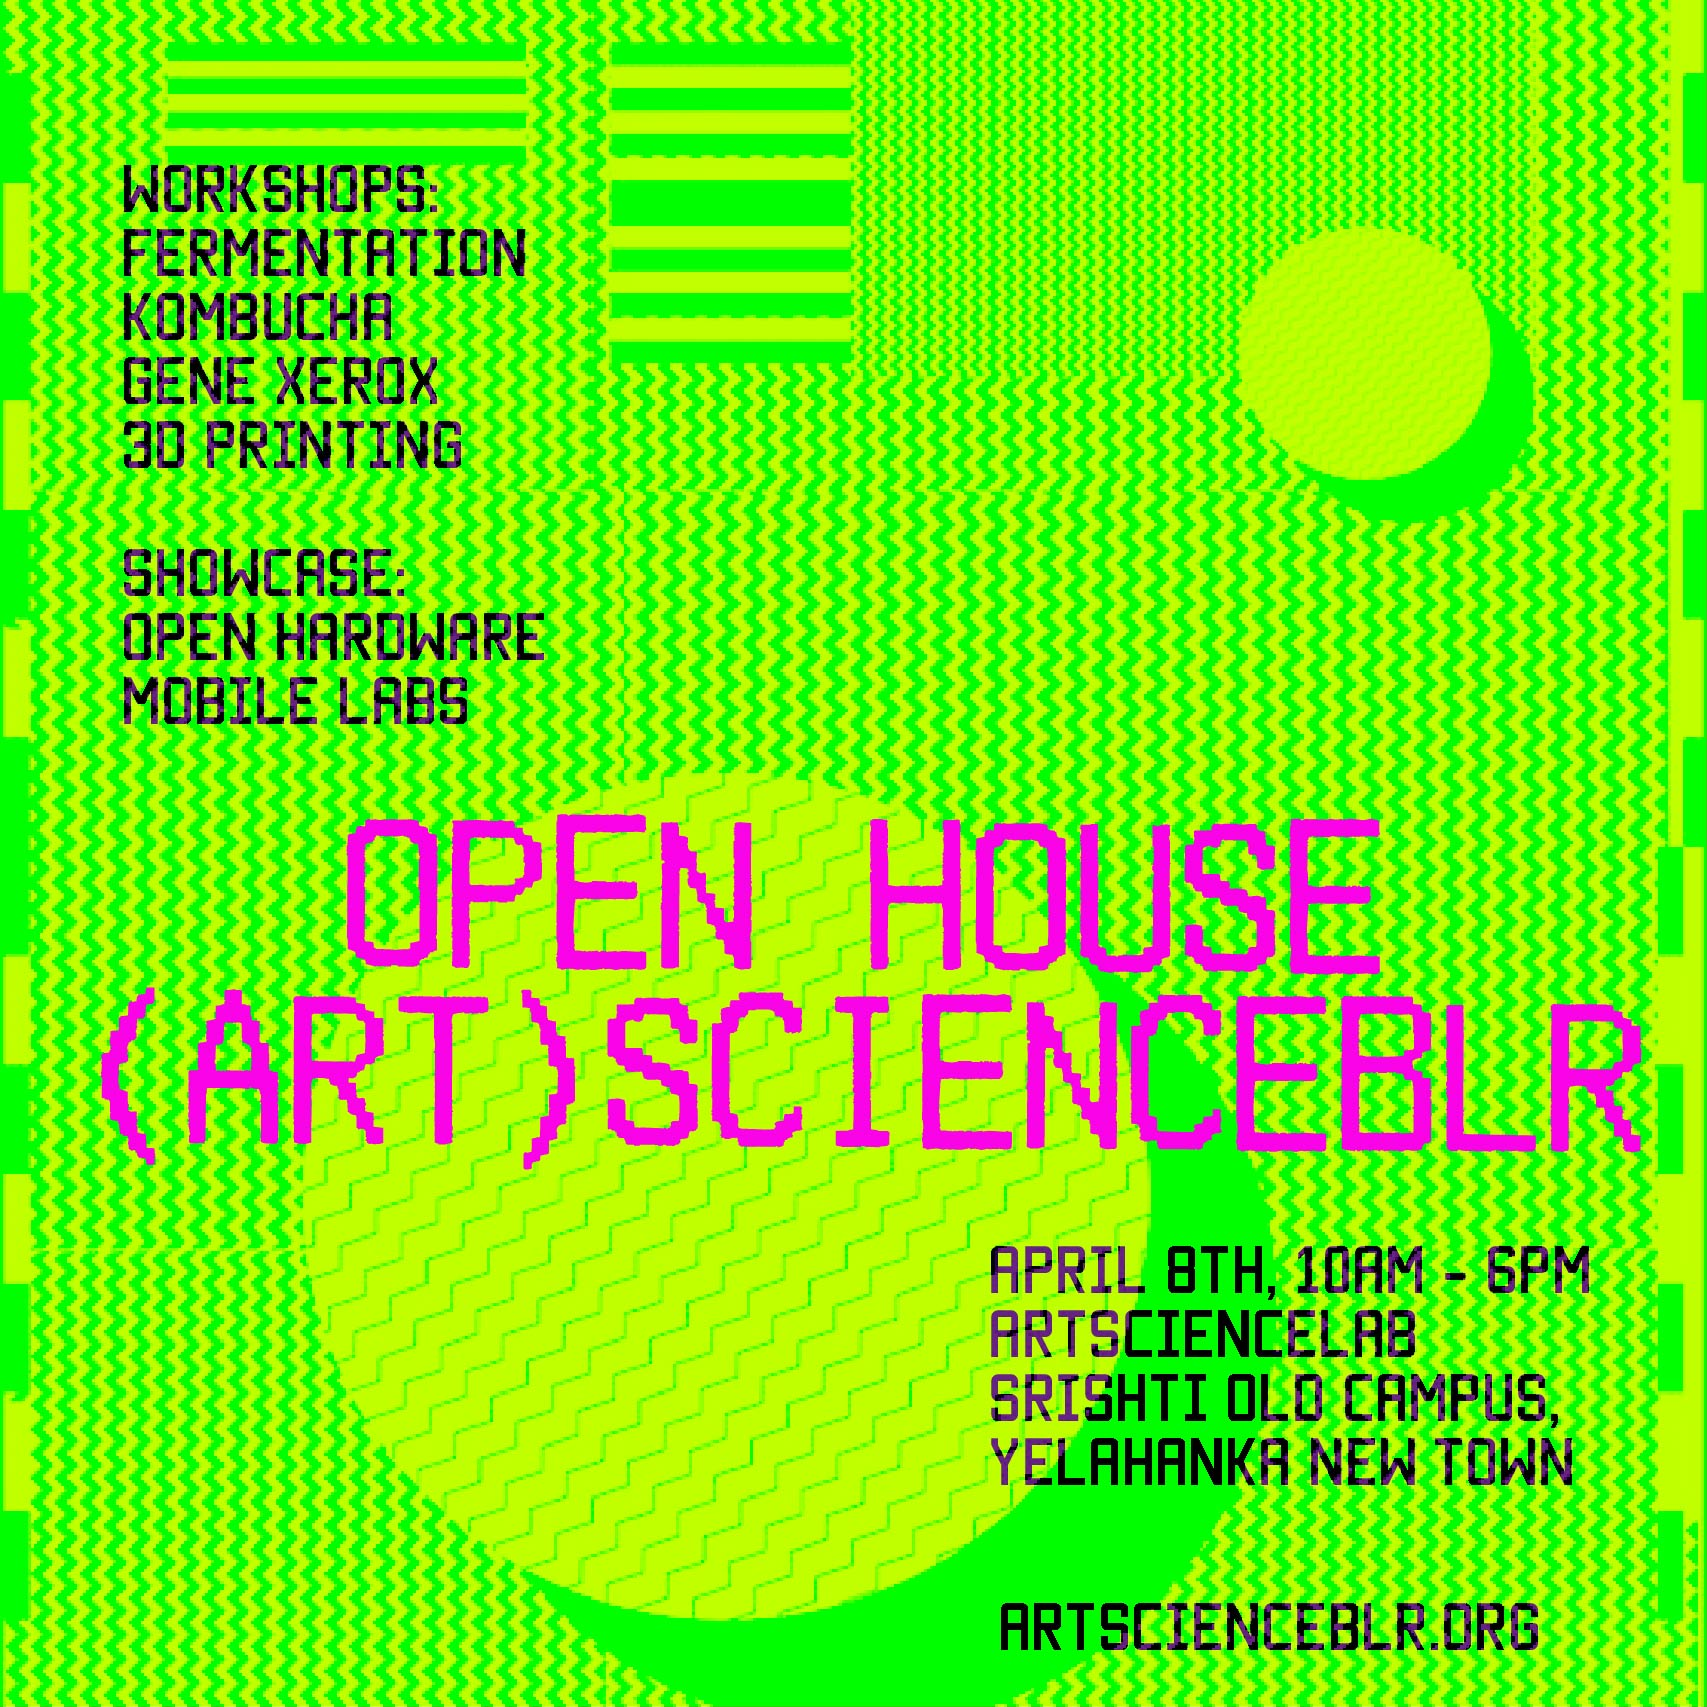 (Art)ScienceBLR Open House